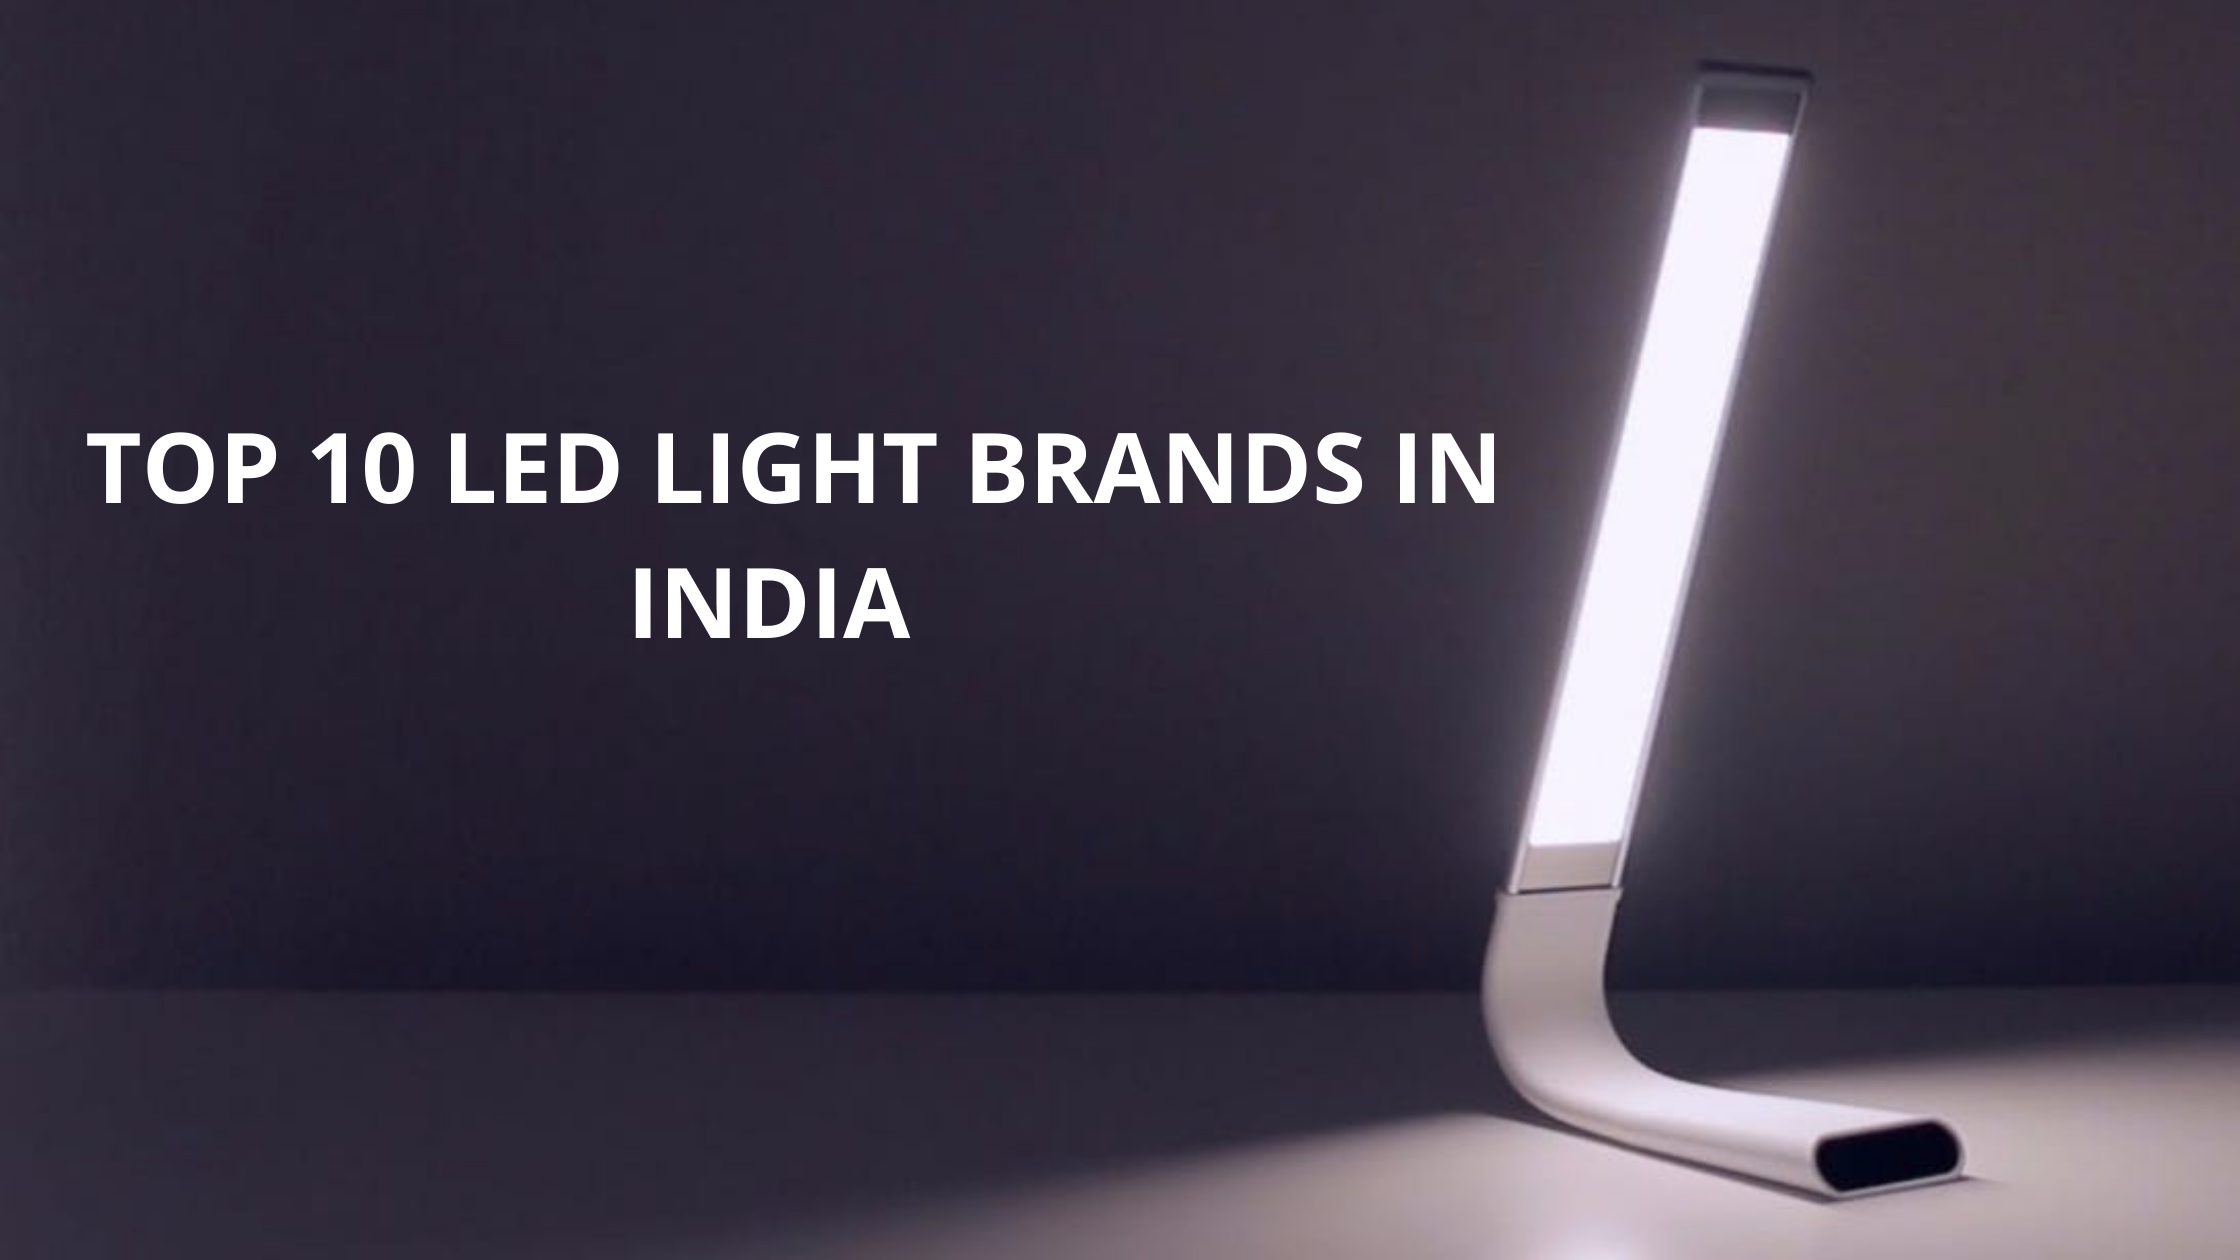 Top 10 LED Light Brands in India